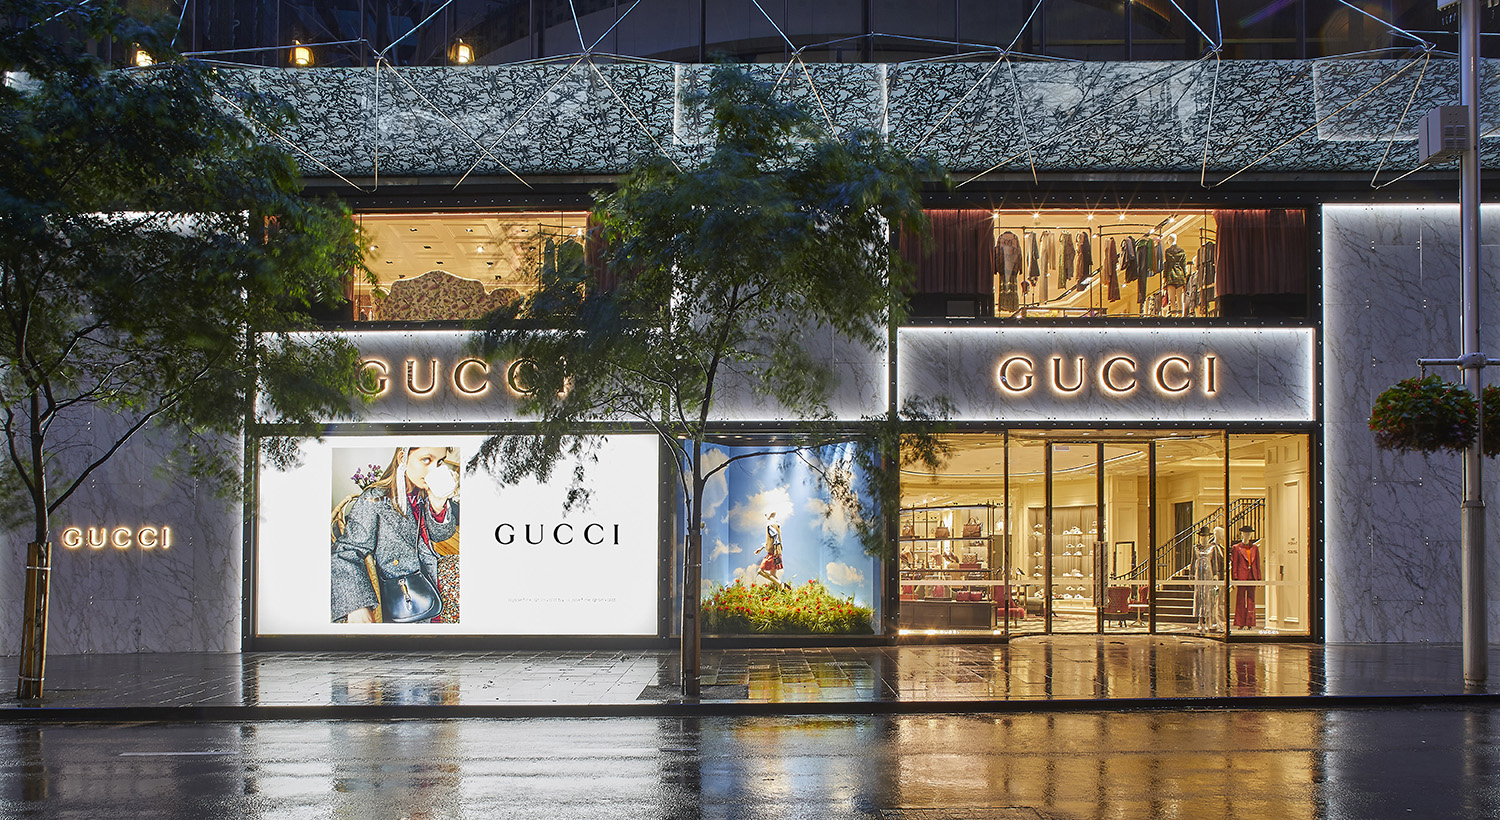 Gucci opens newly renovated store in Sydney at Westfield